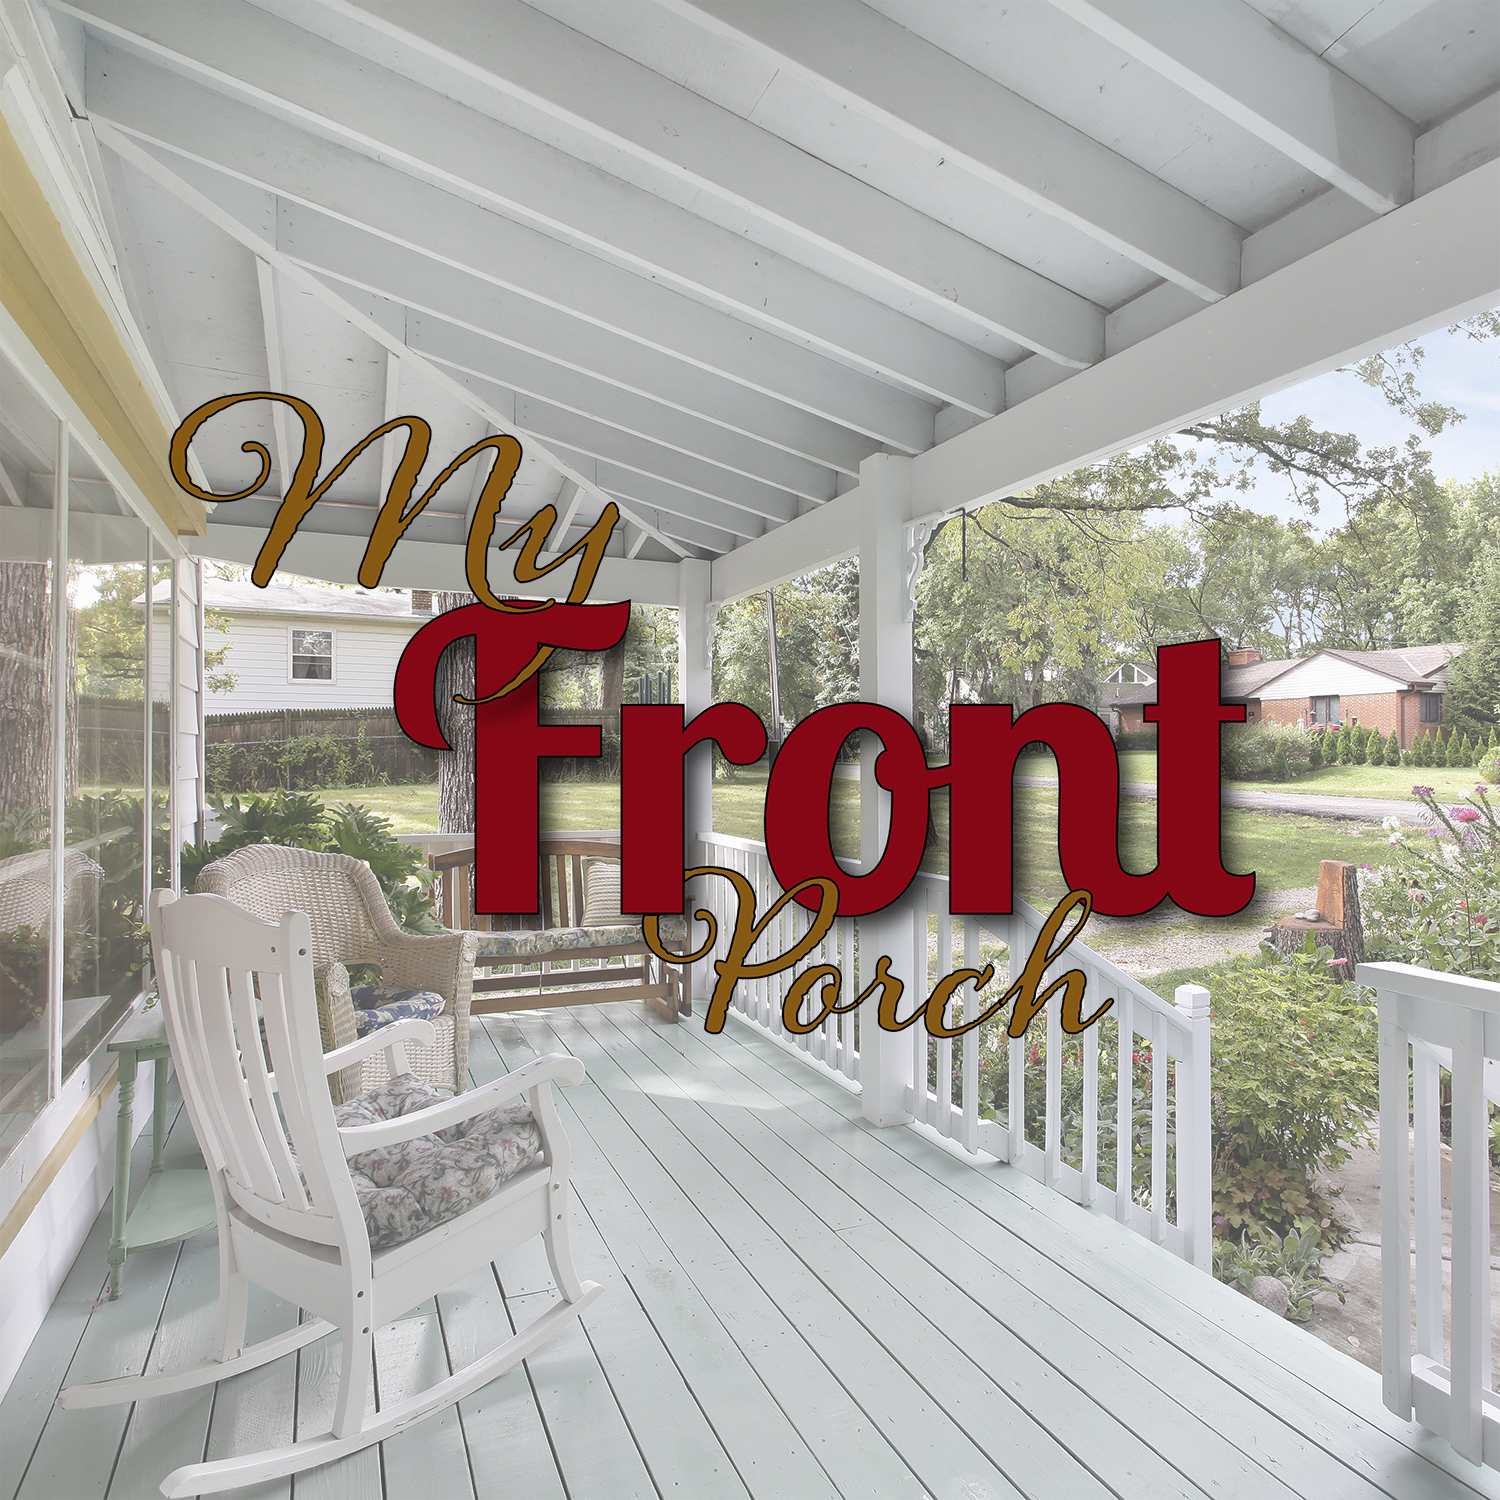 Front porch on suburban home with rocking chair and bench.